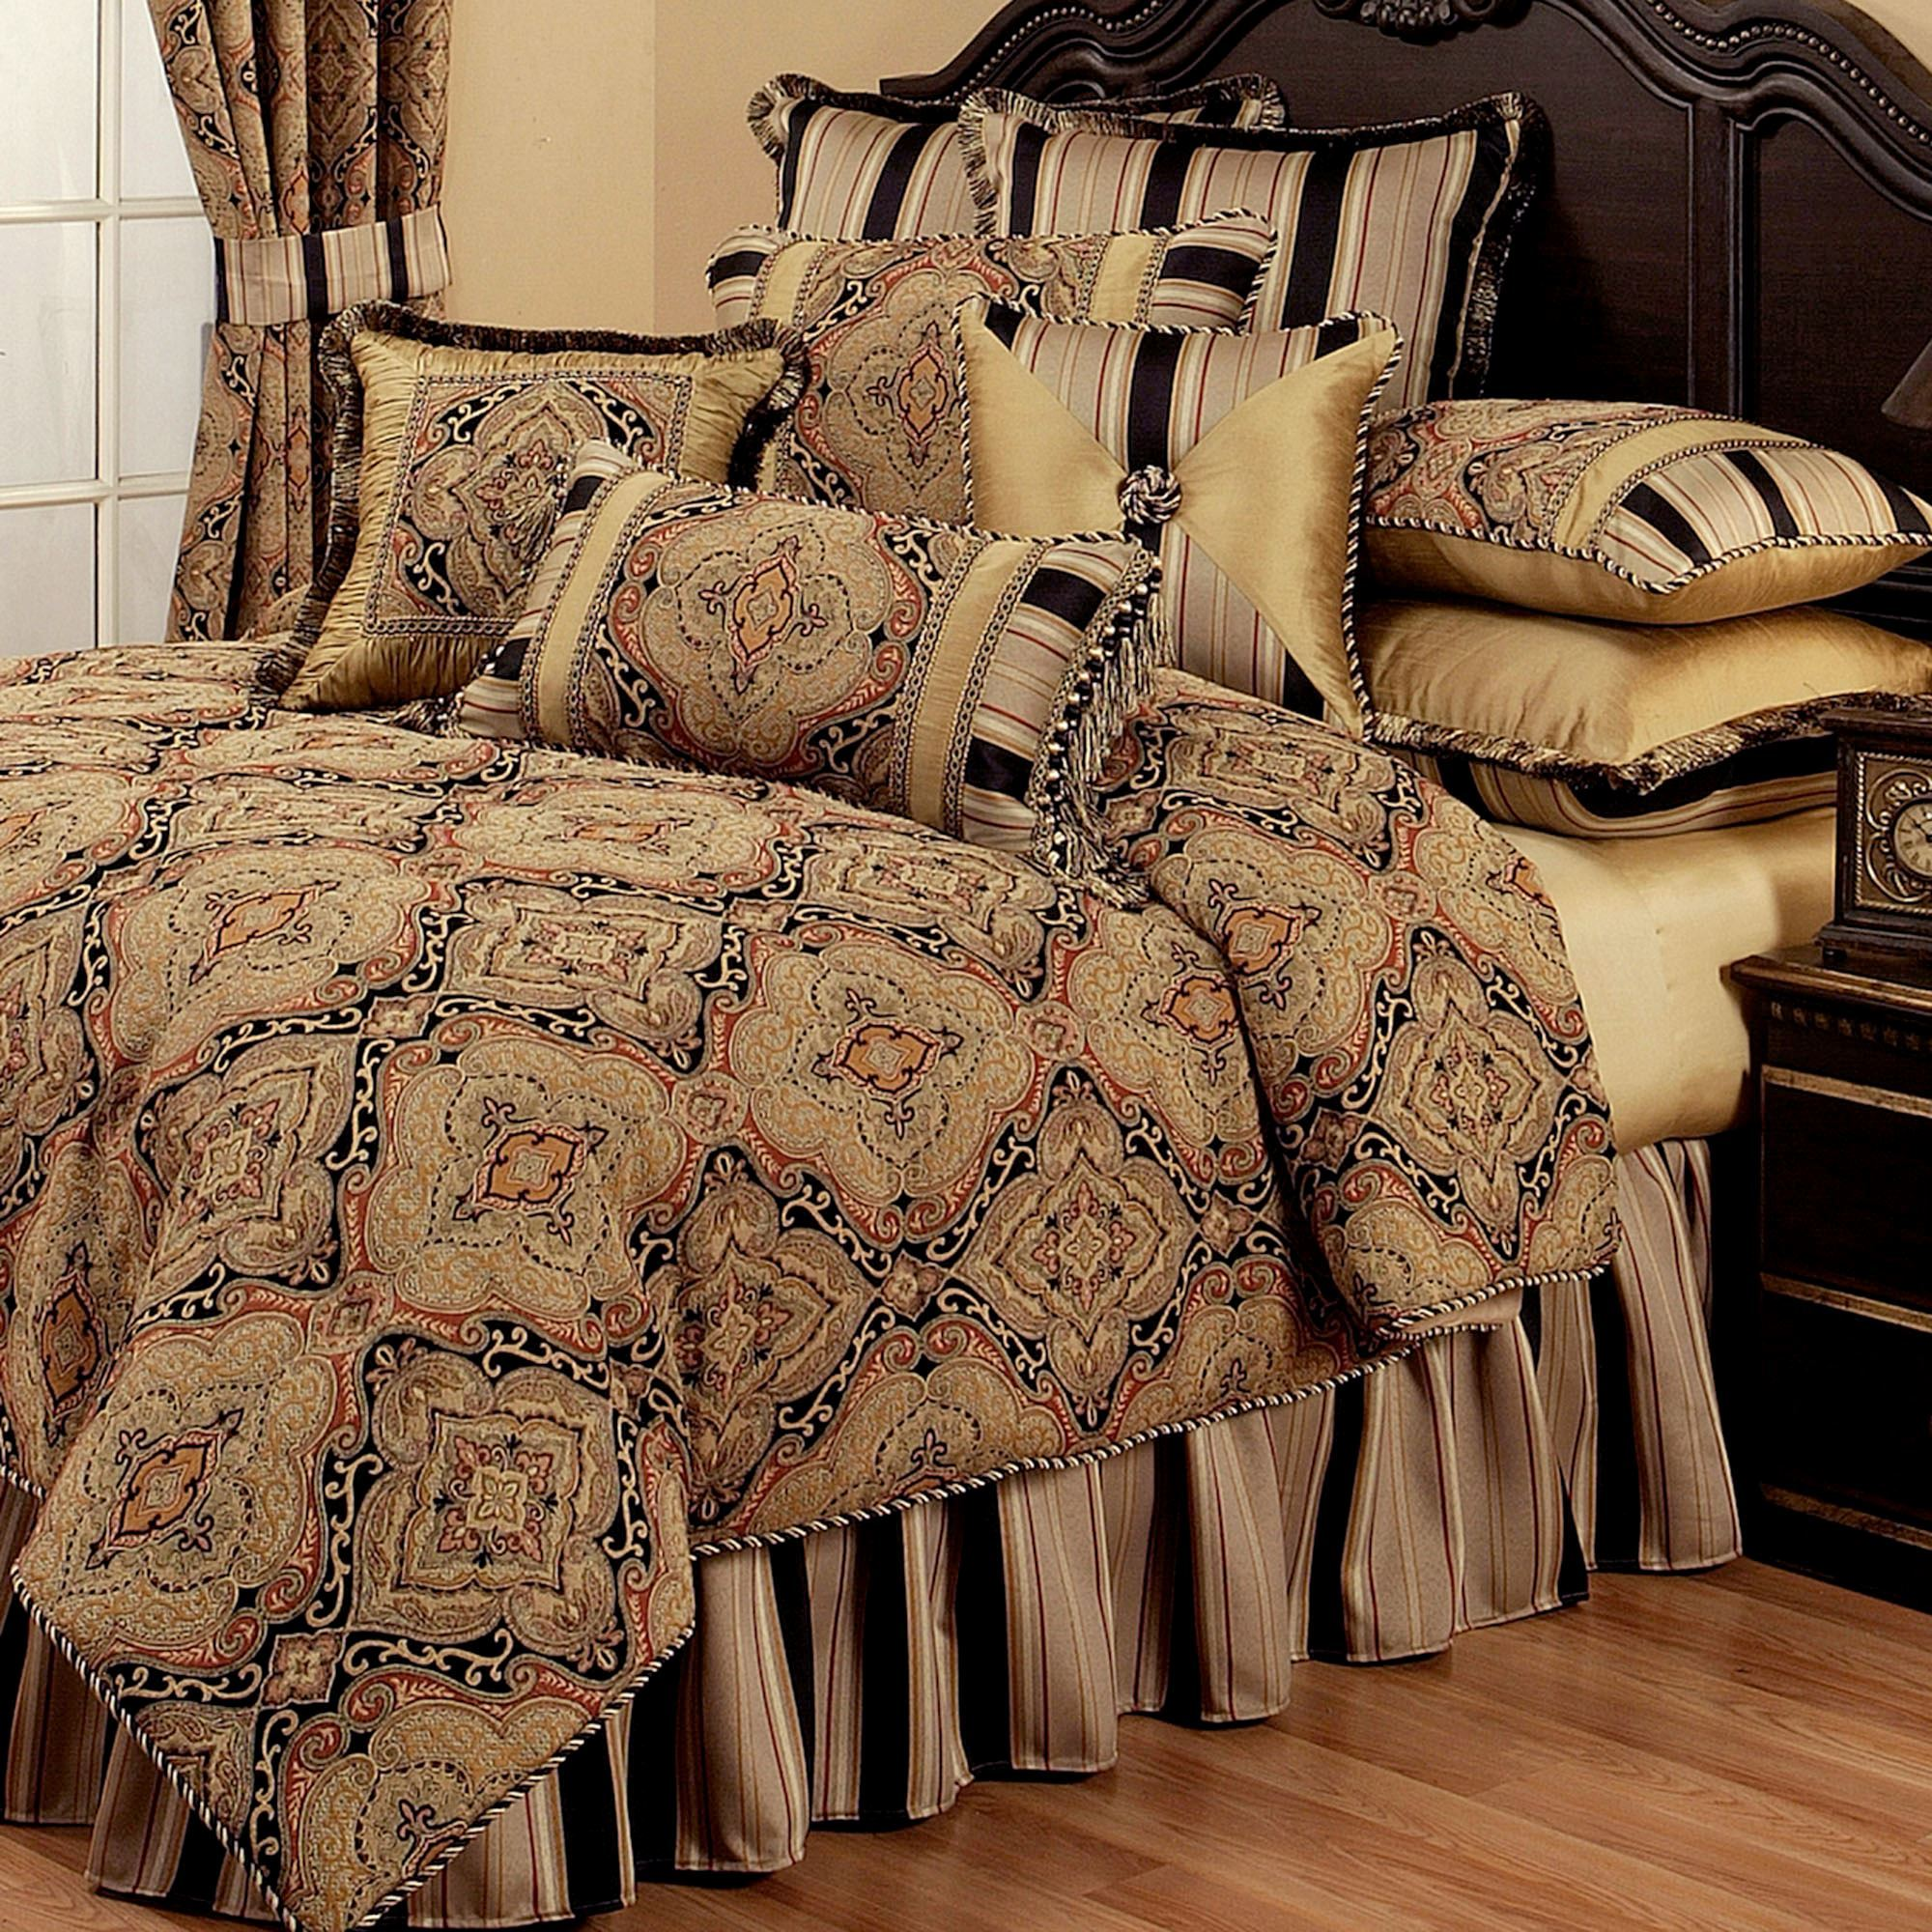 plaid set sheet multi comforter unlimited warm sets bedding ducks